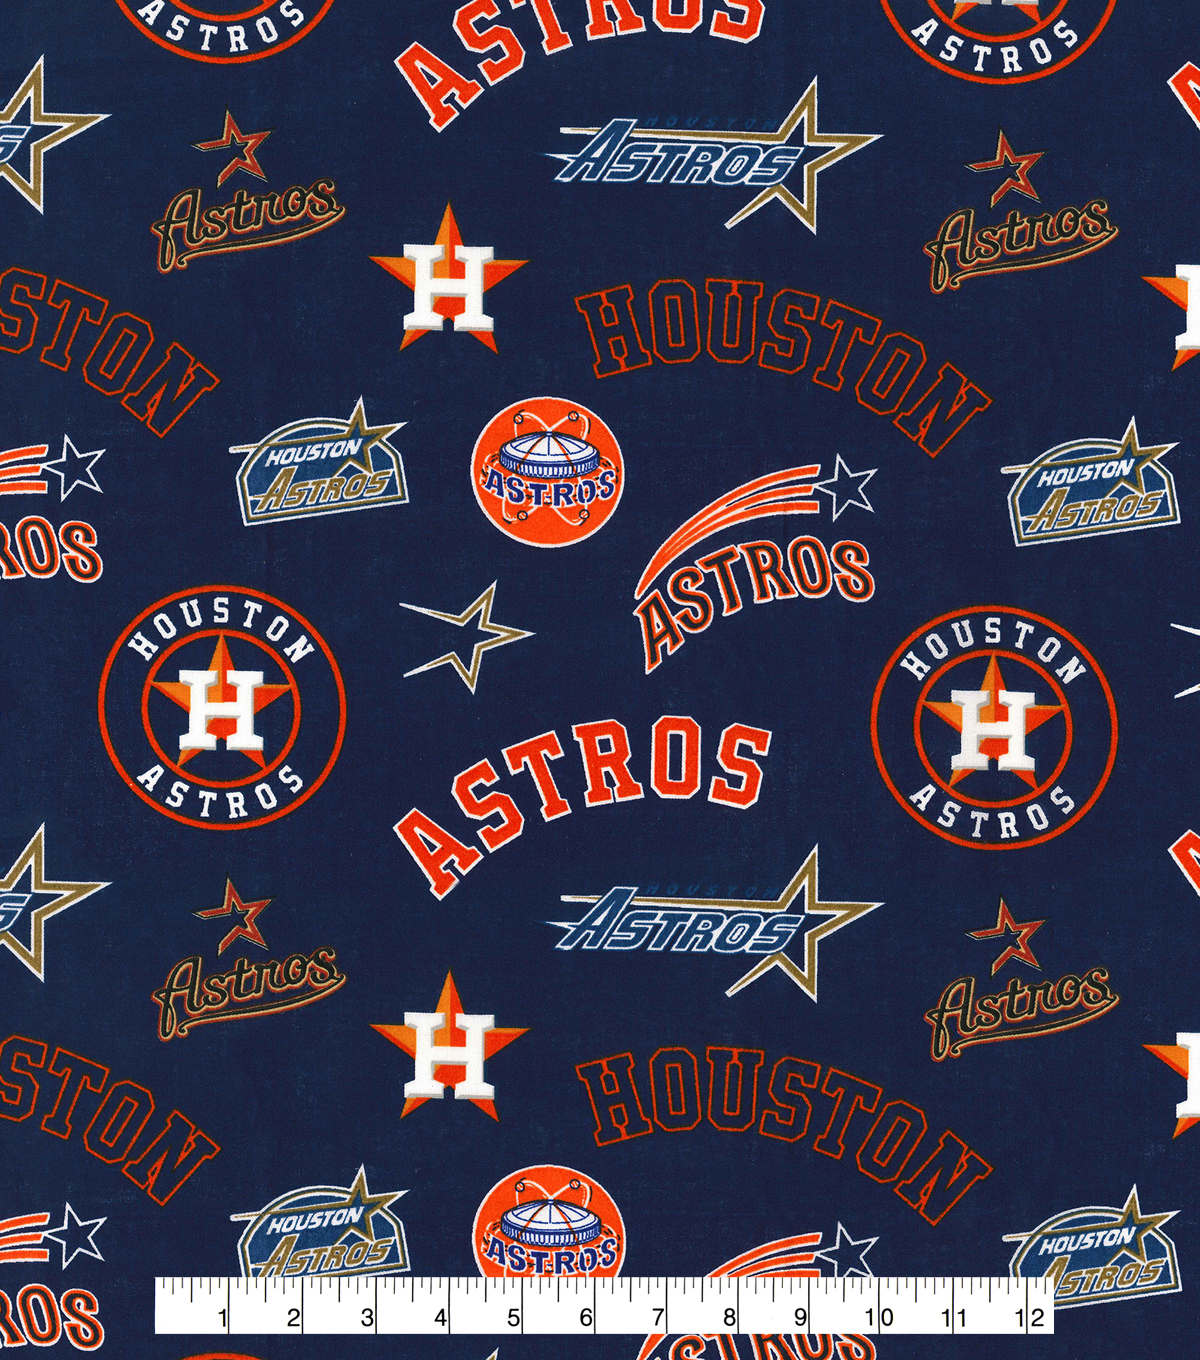 Cooperstown Houston Astros Cotton Fabric